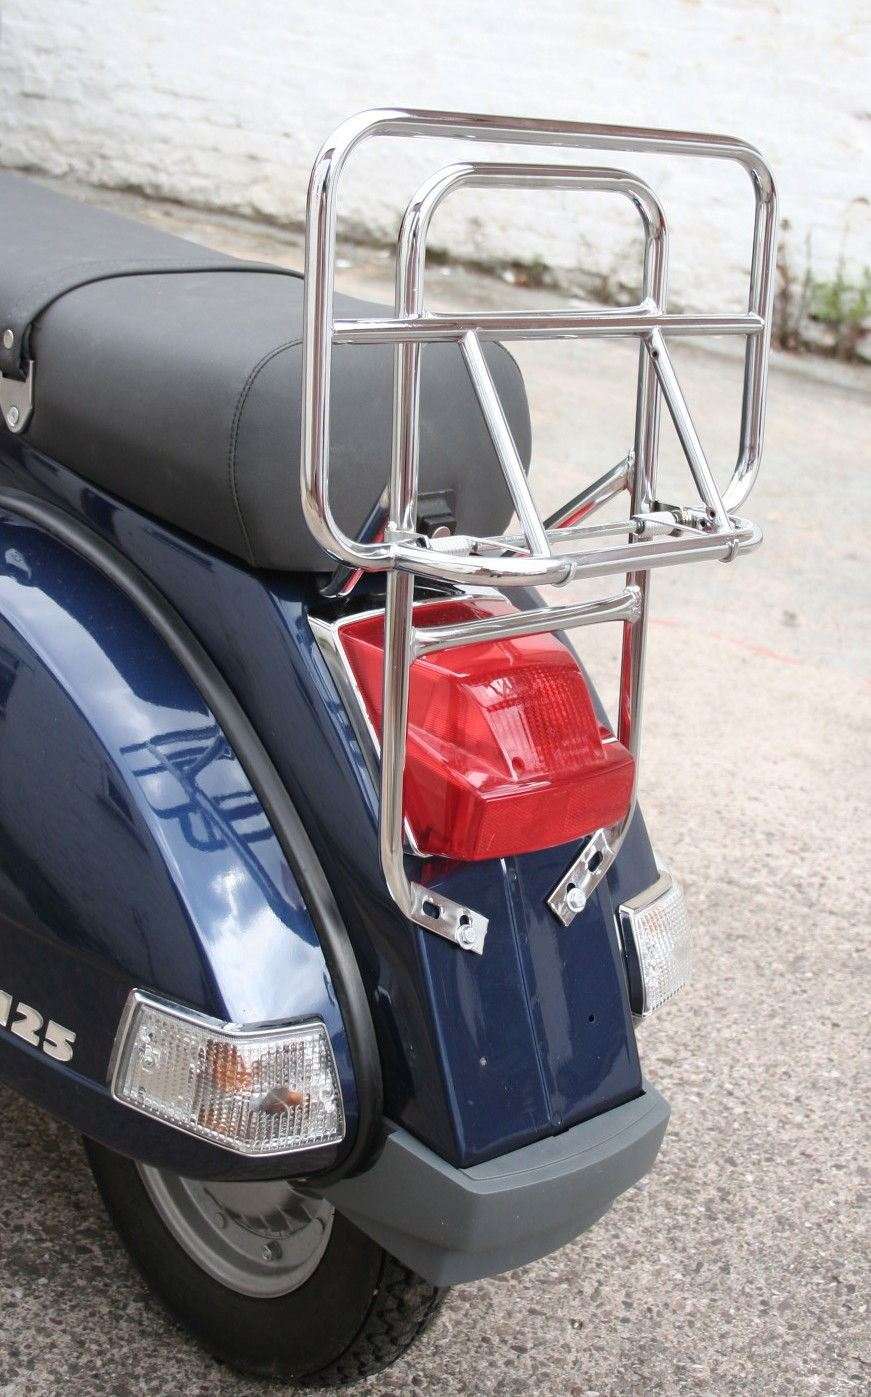 Vespa RMS portabauletto Rear Rack Chrome Vespa px-lml //Carrier Vespa Chromed px-lml Vespa Carrier Rack